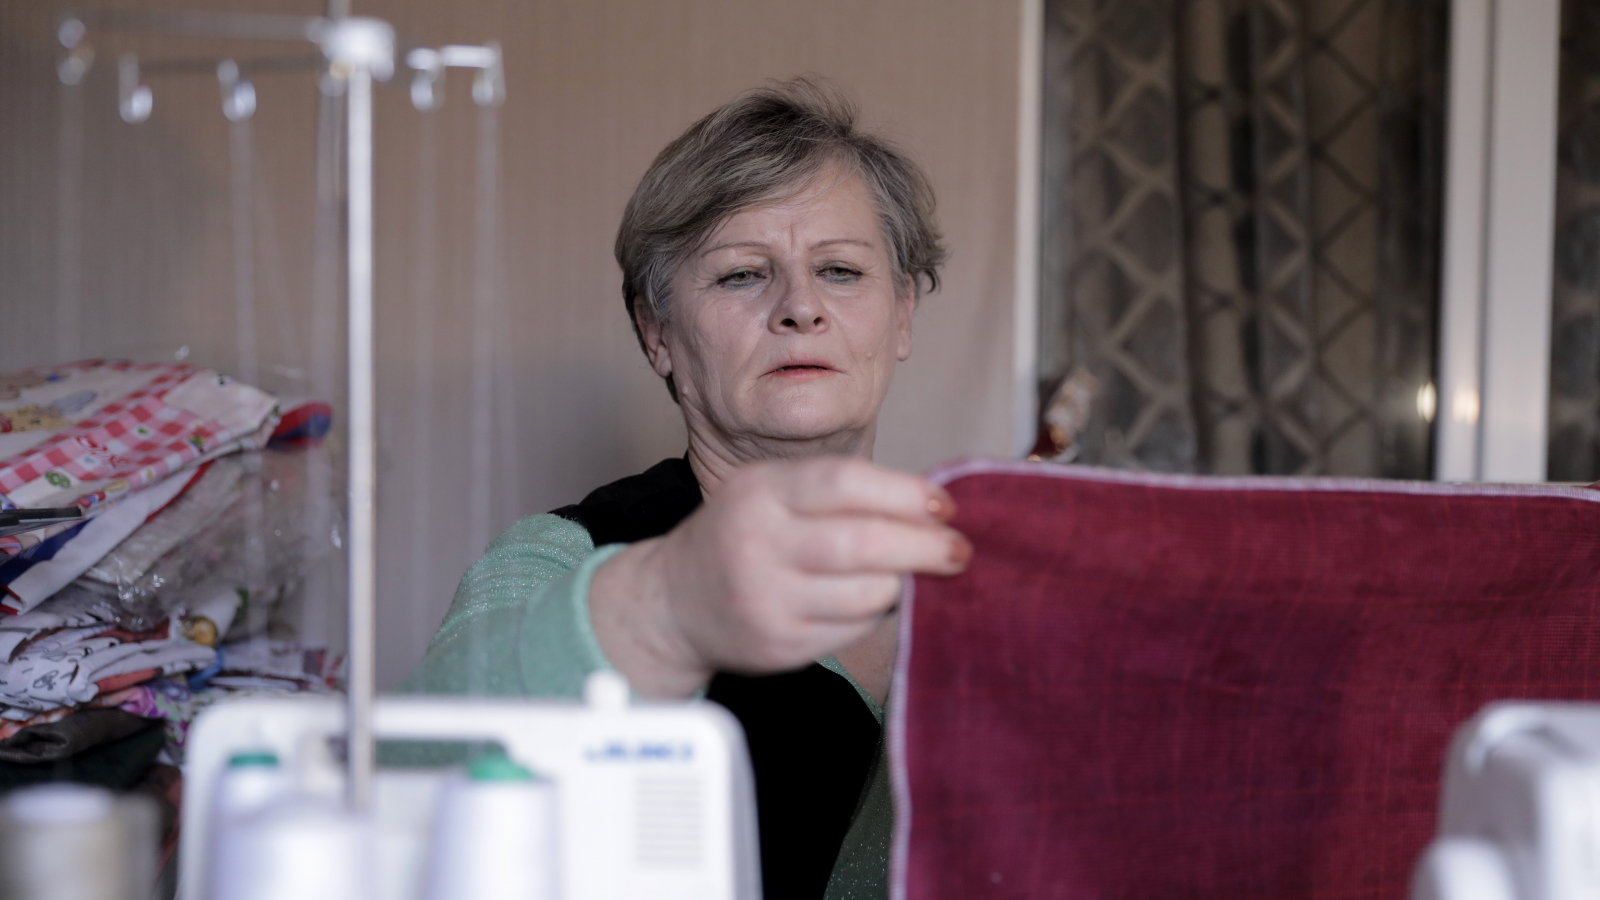 Galina Natela measuring the fabric during process of sewing linen